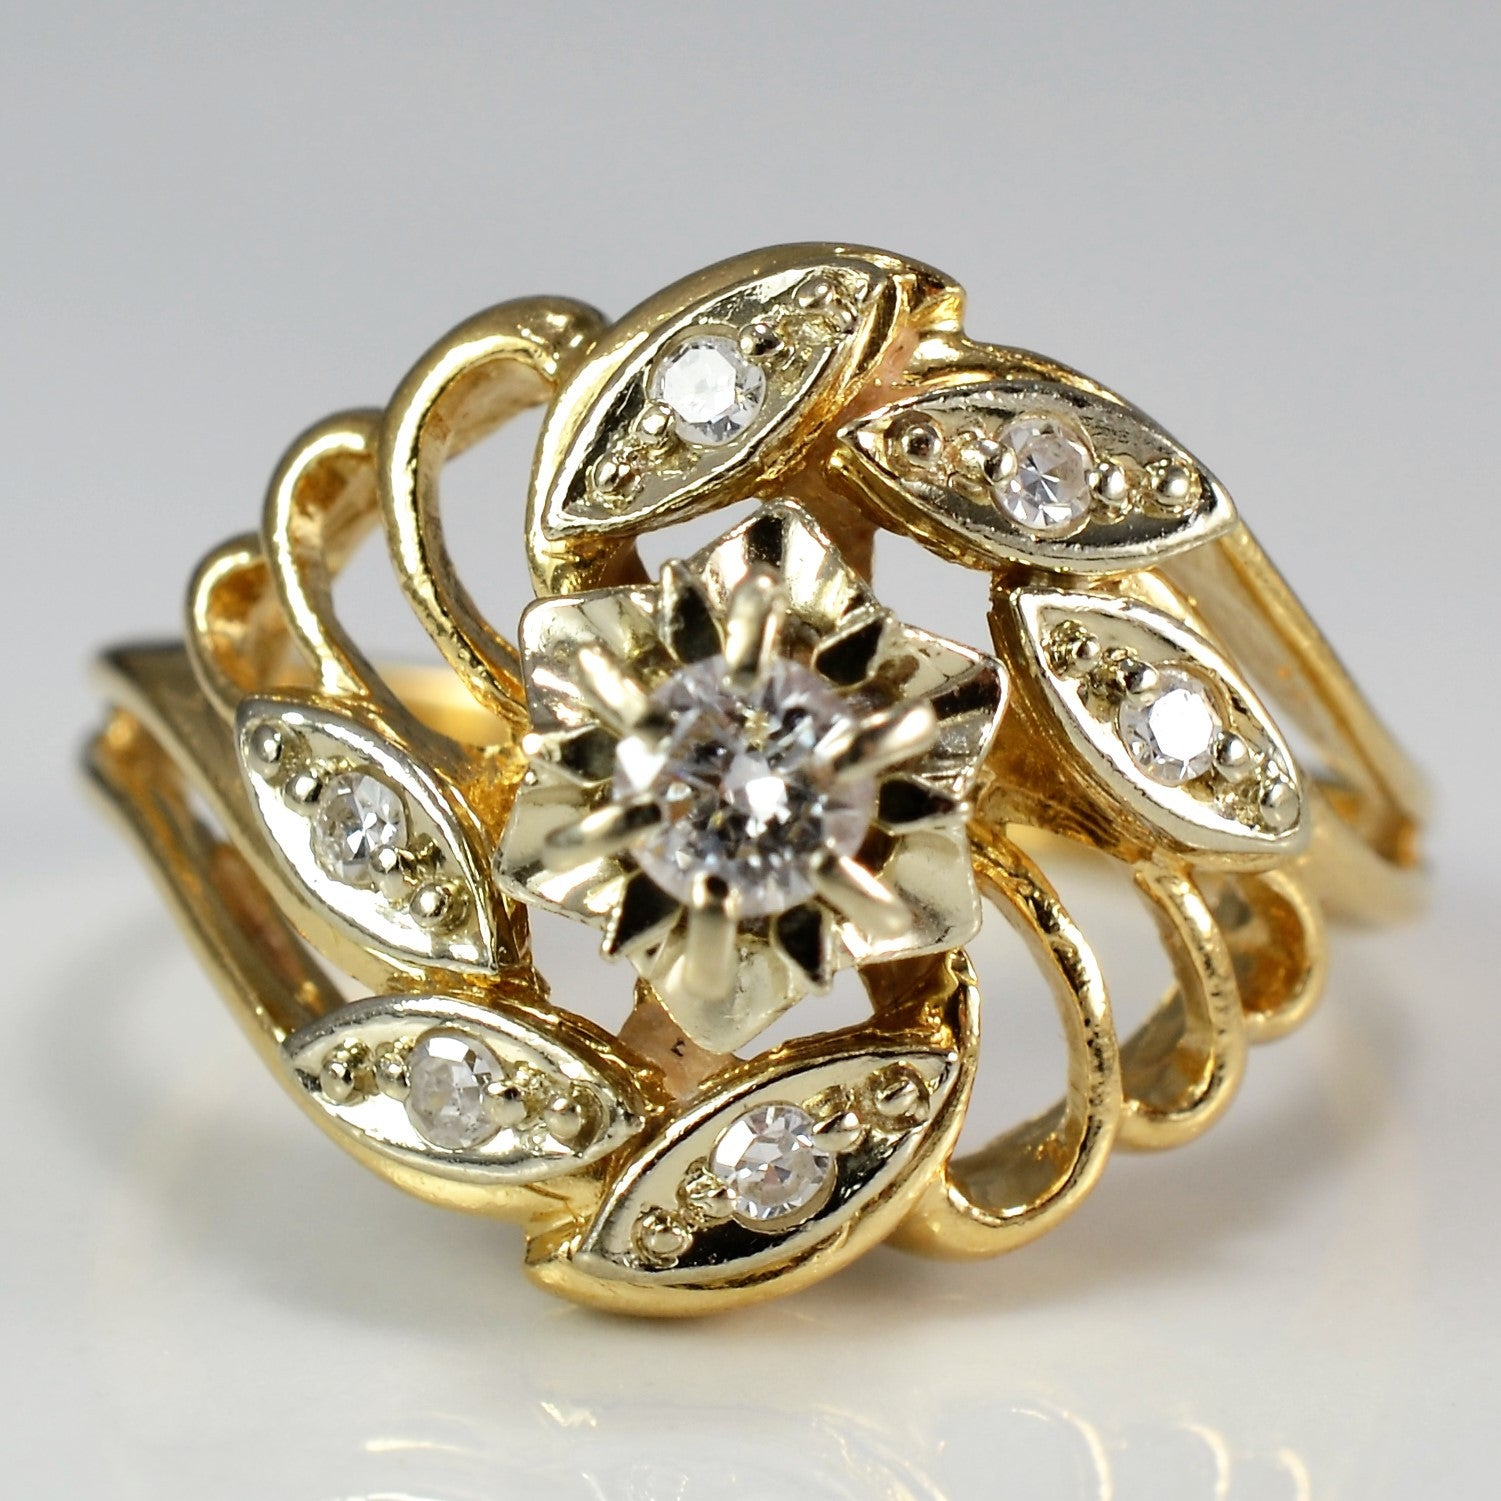 Floral Illusion Set Diamond Ring | 0.25 ctw, SZ 7.25 |